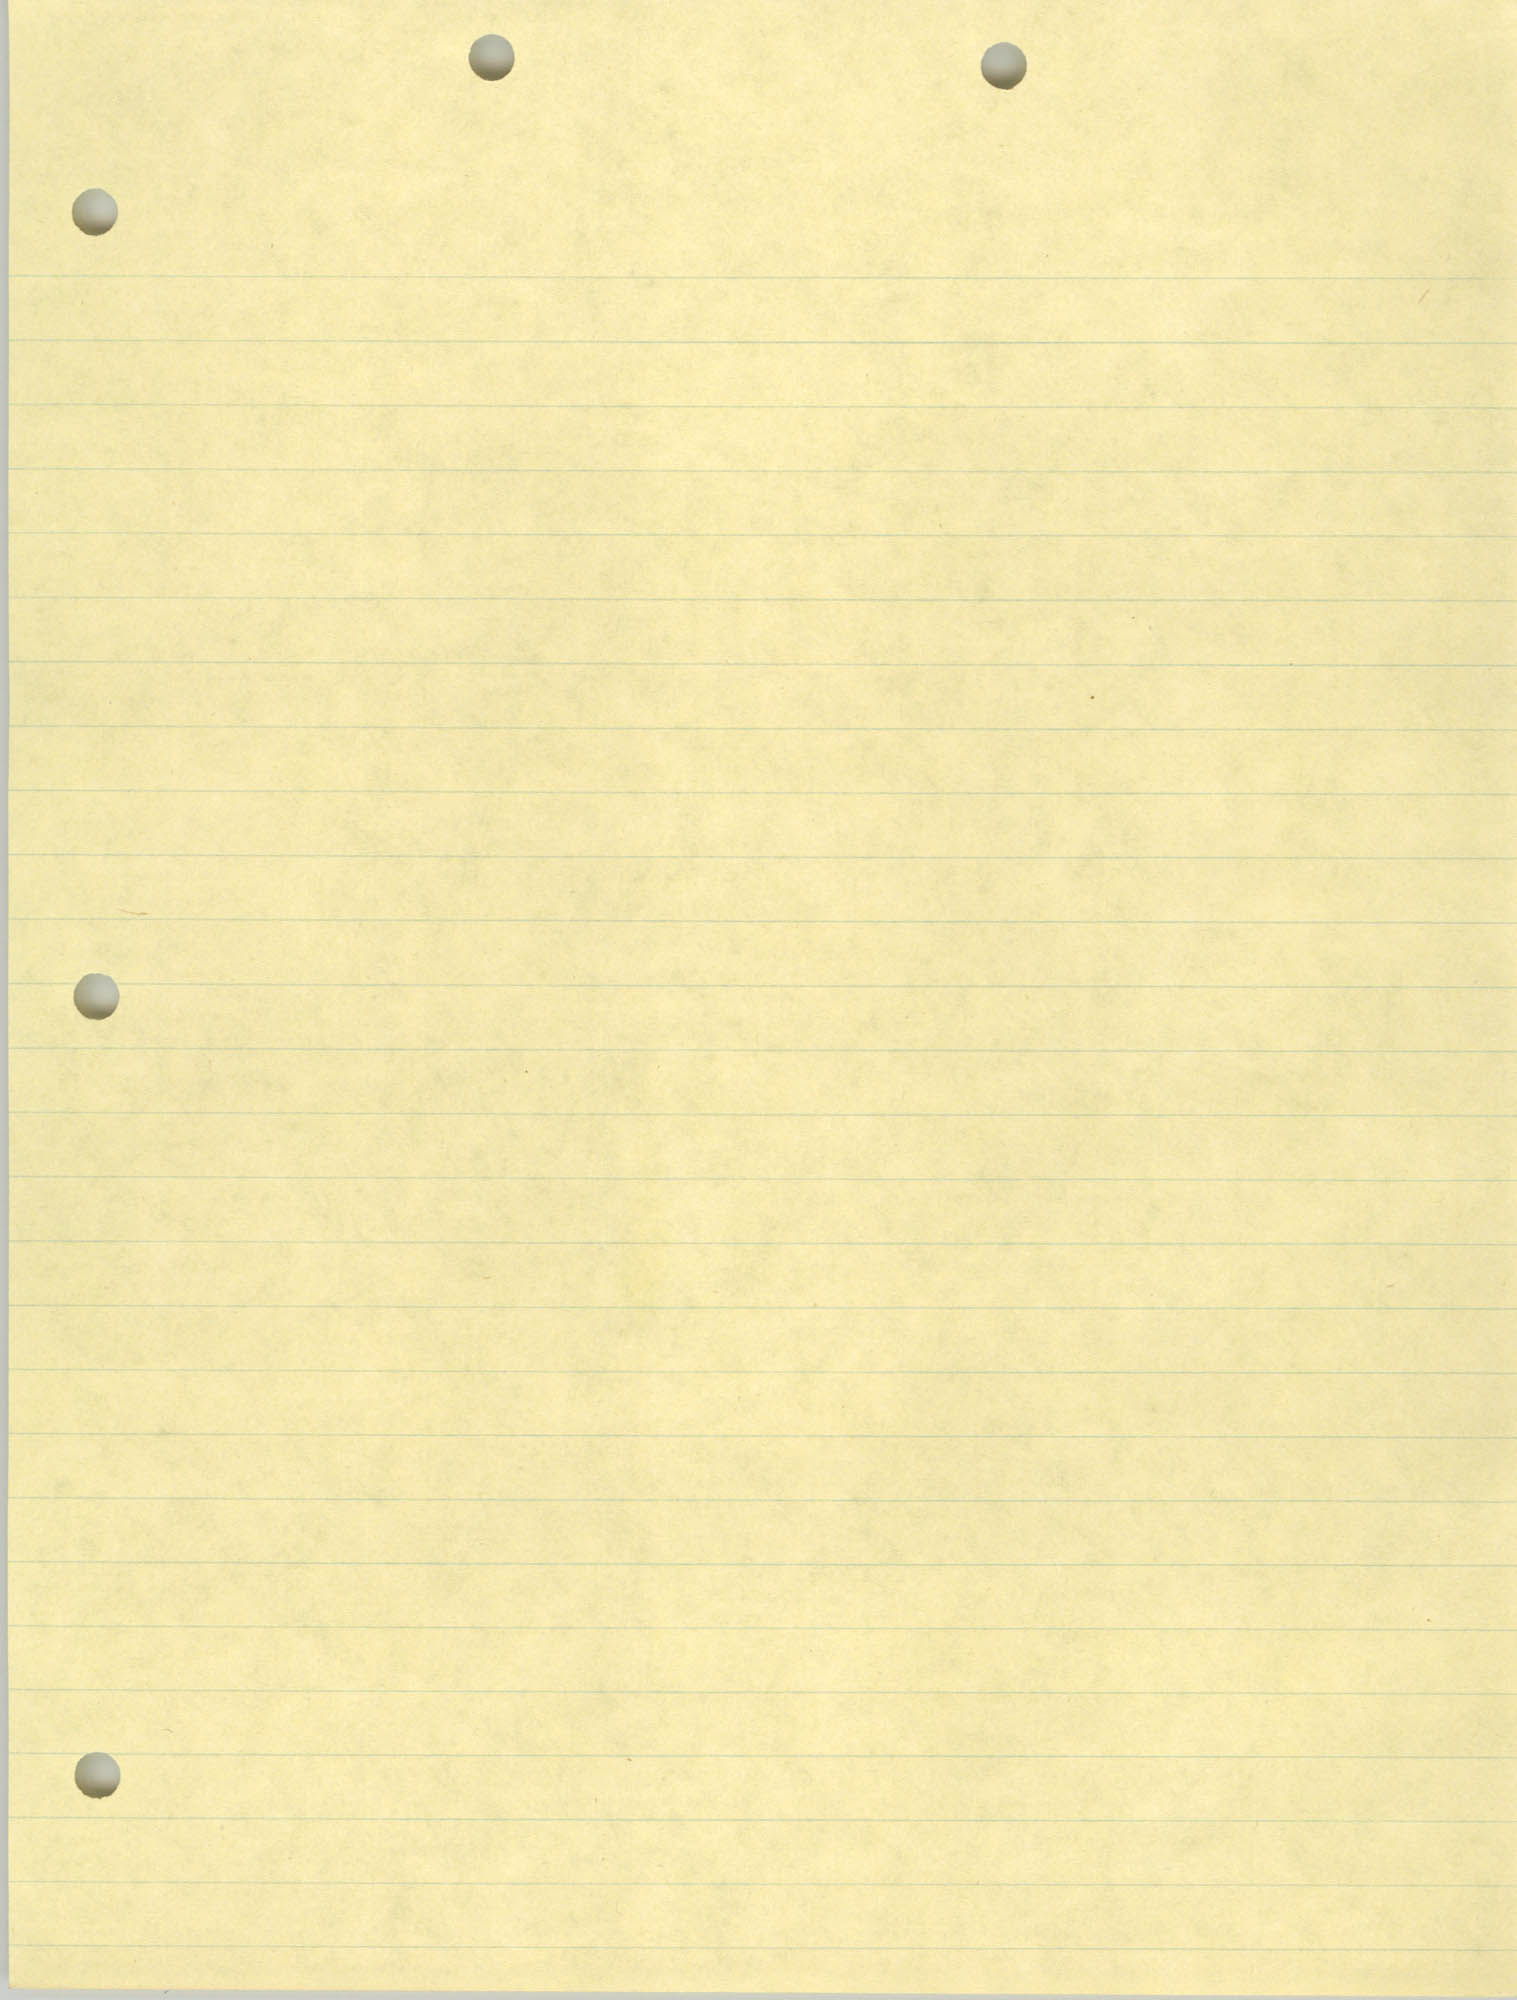 Blank Legal Pad Page